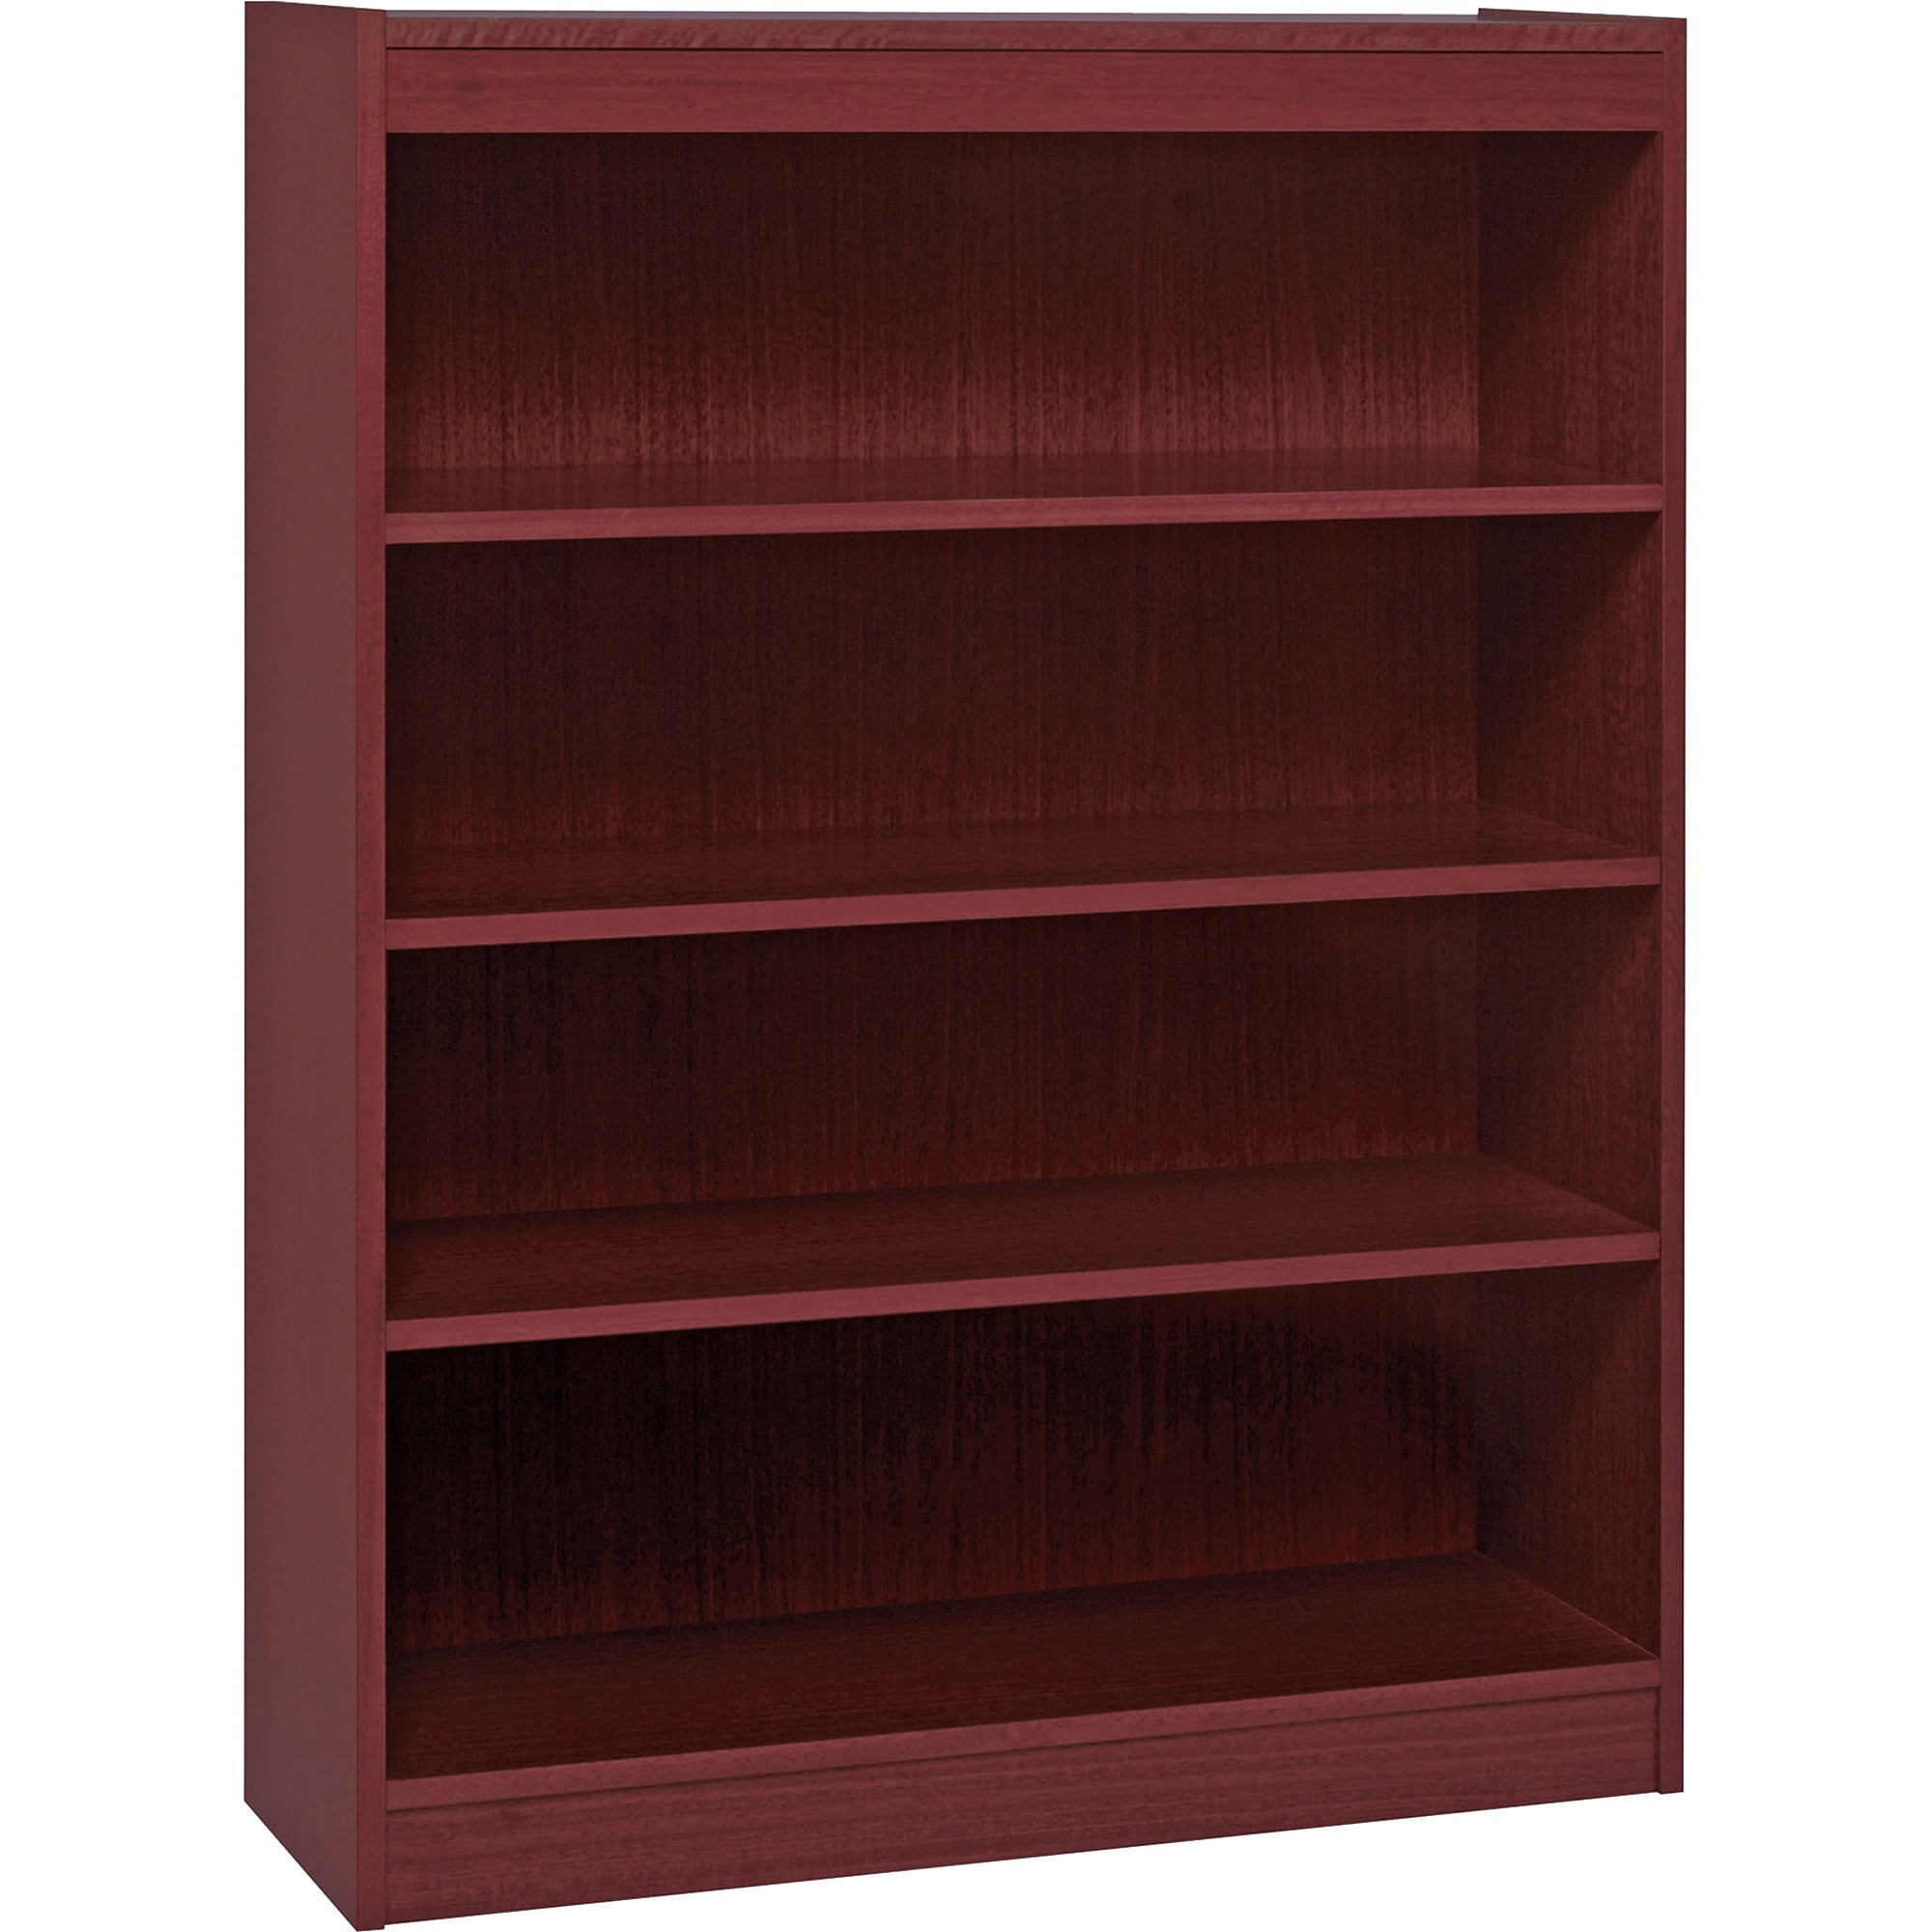 Lorell, LLR60072, Panel End Hardwood Veneer Bookcase, 1 Each, Mahogany